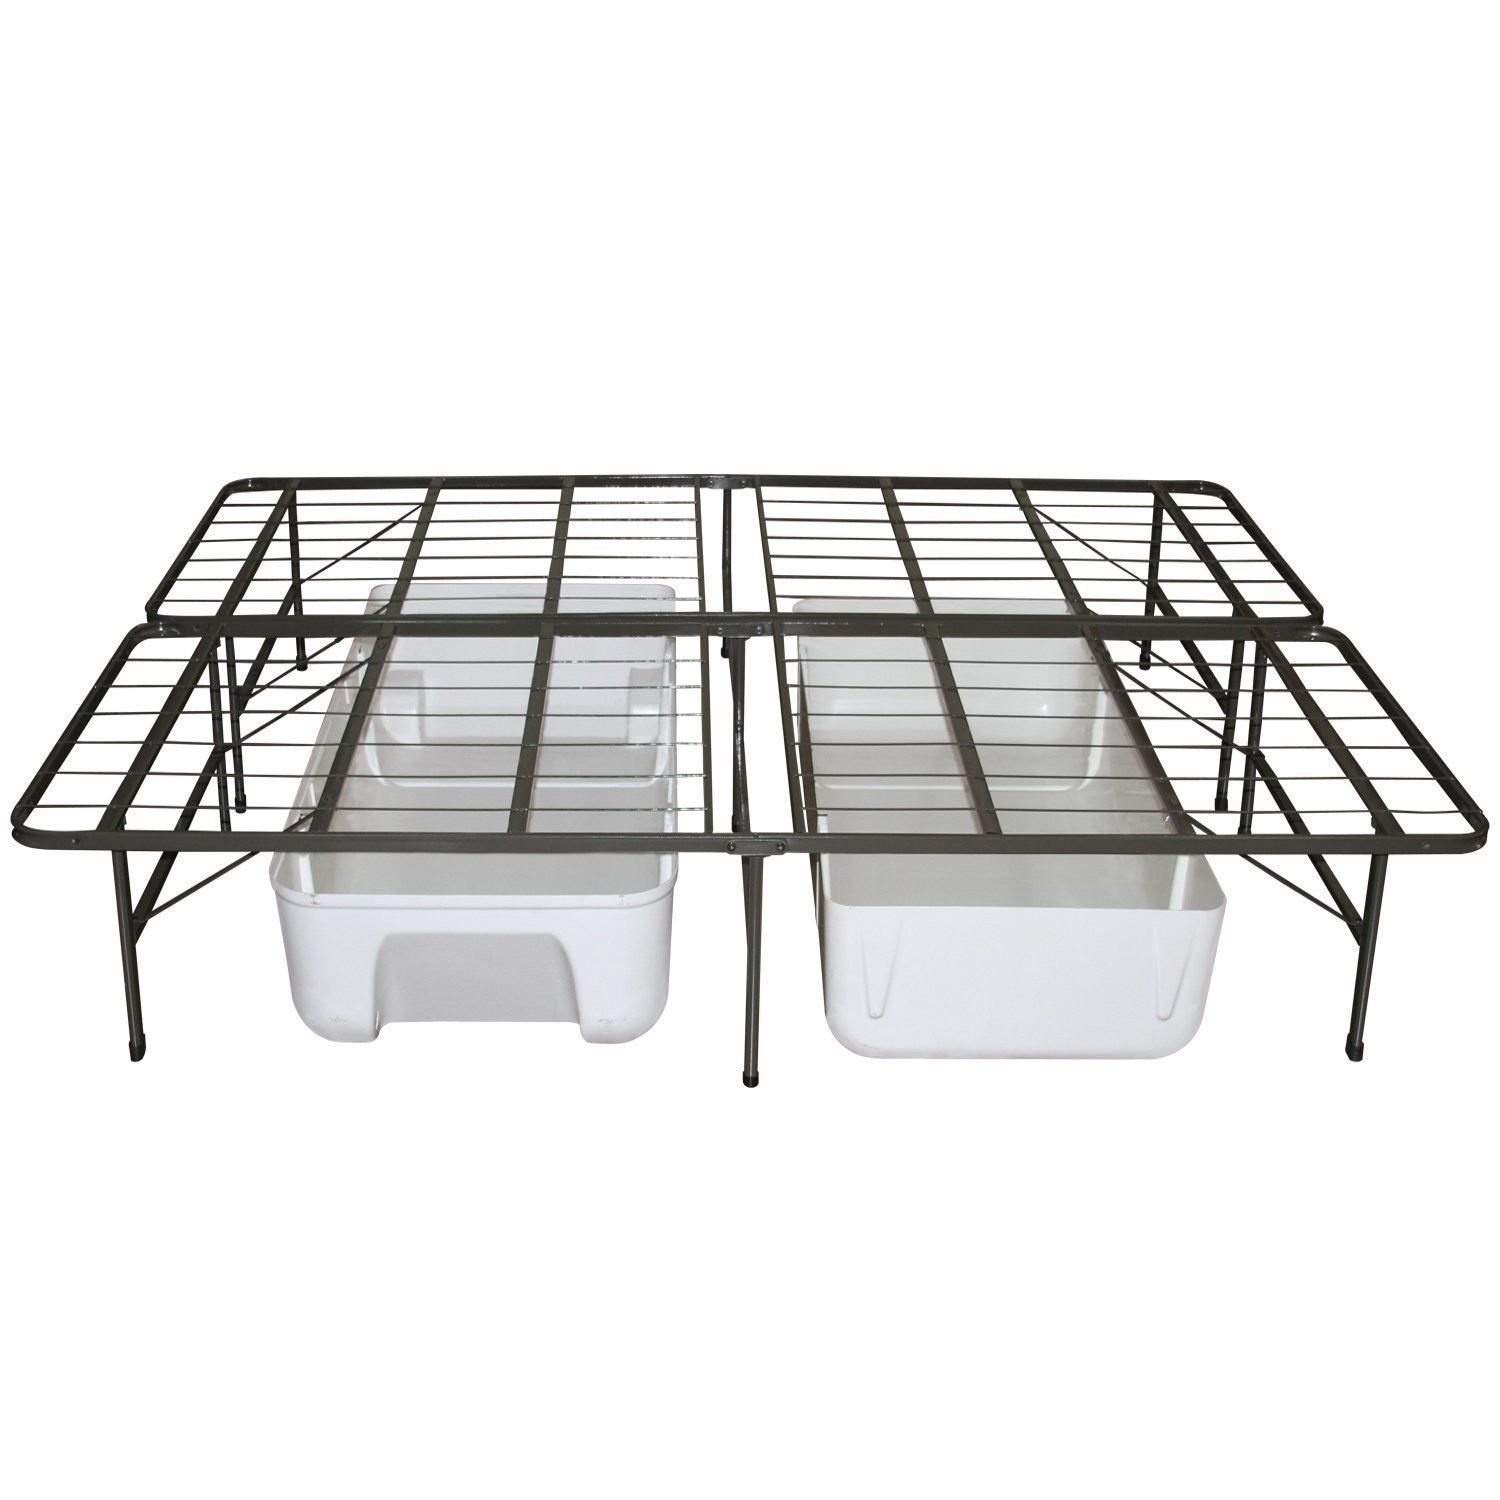 Twin Extra Long Metal Platform Bed Frame with Storage Space ...